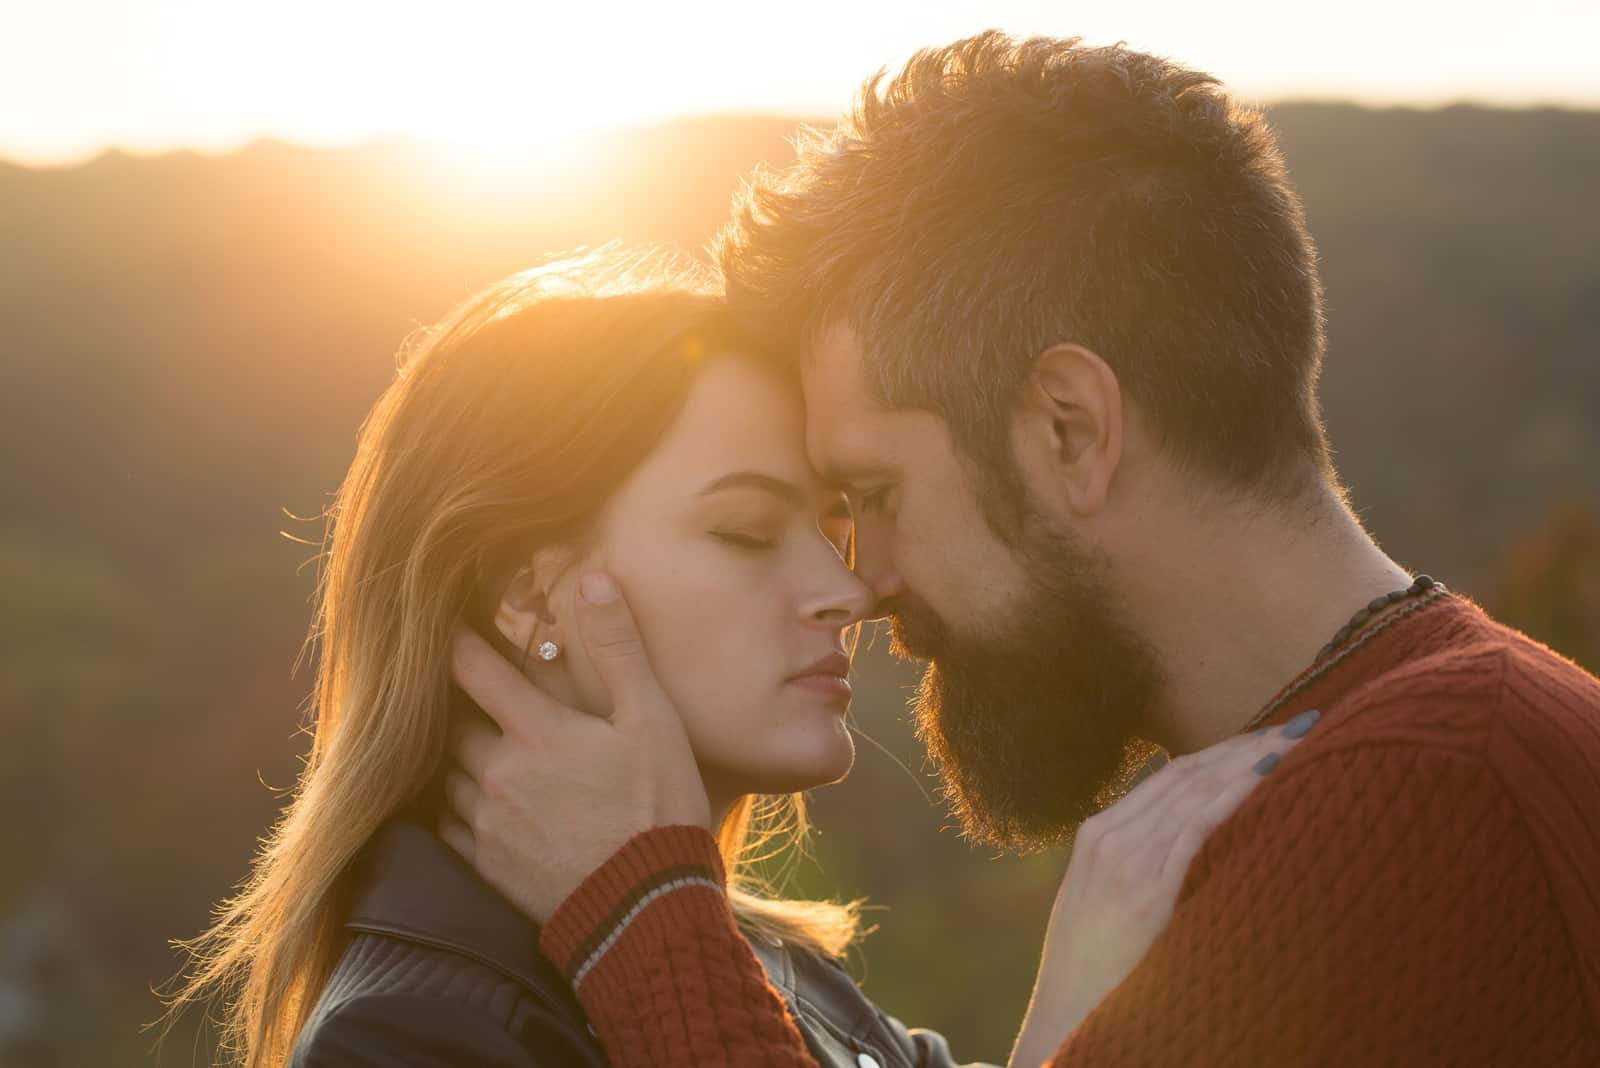 man and woman about to kiss while standing outdoor